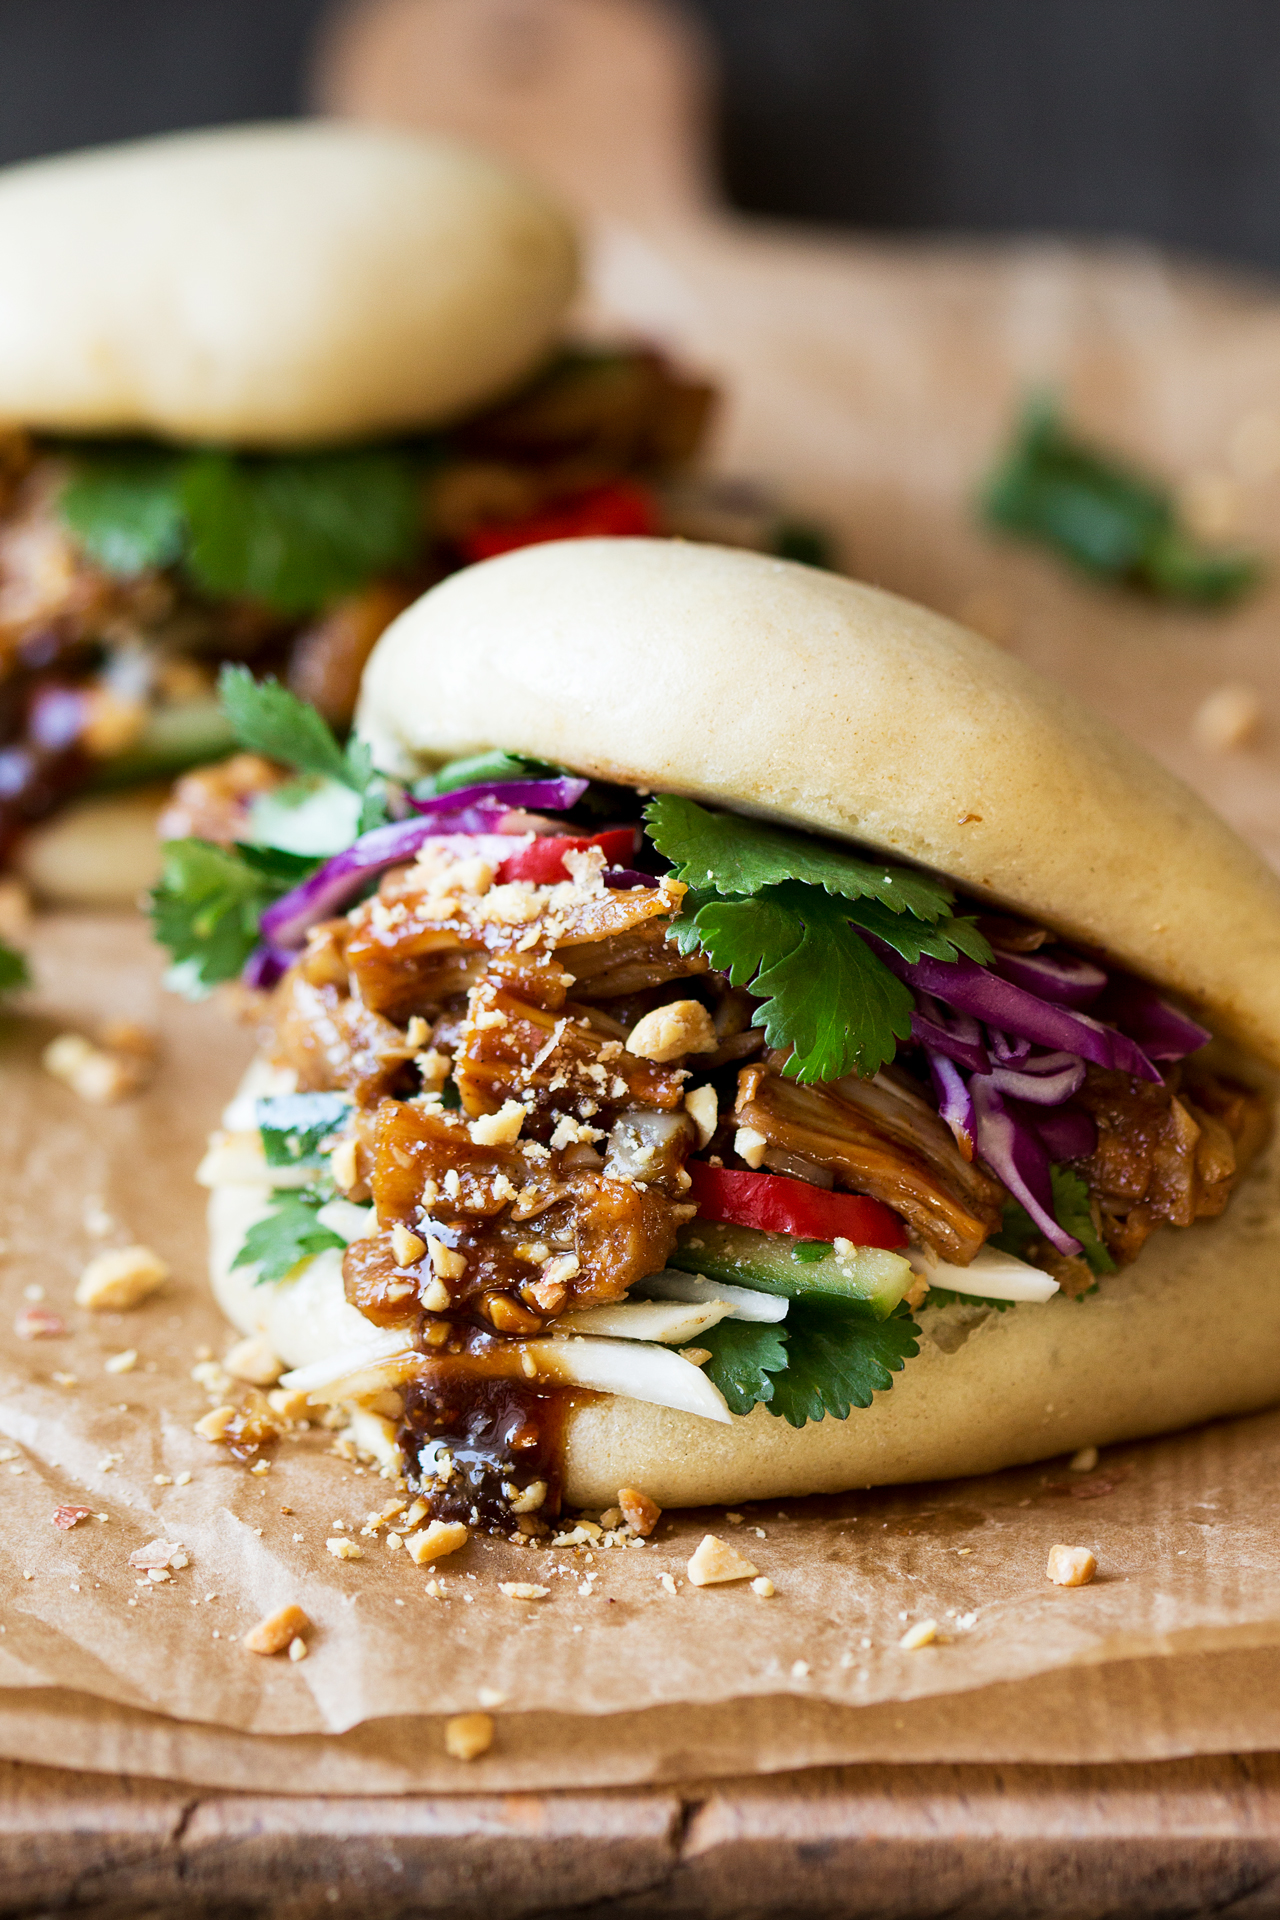 Vegan Bao Buns With Pulled Jackfruit Lazy Cat Kitchen